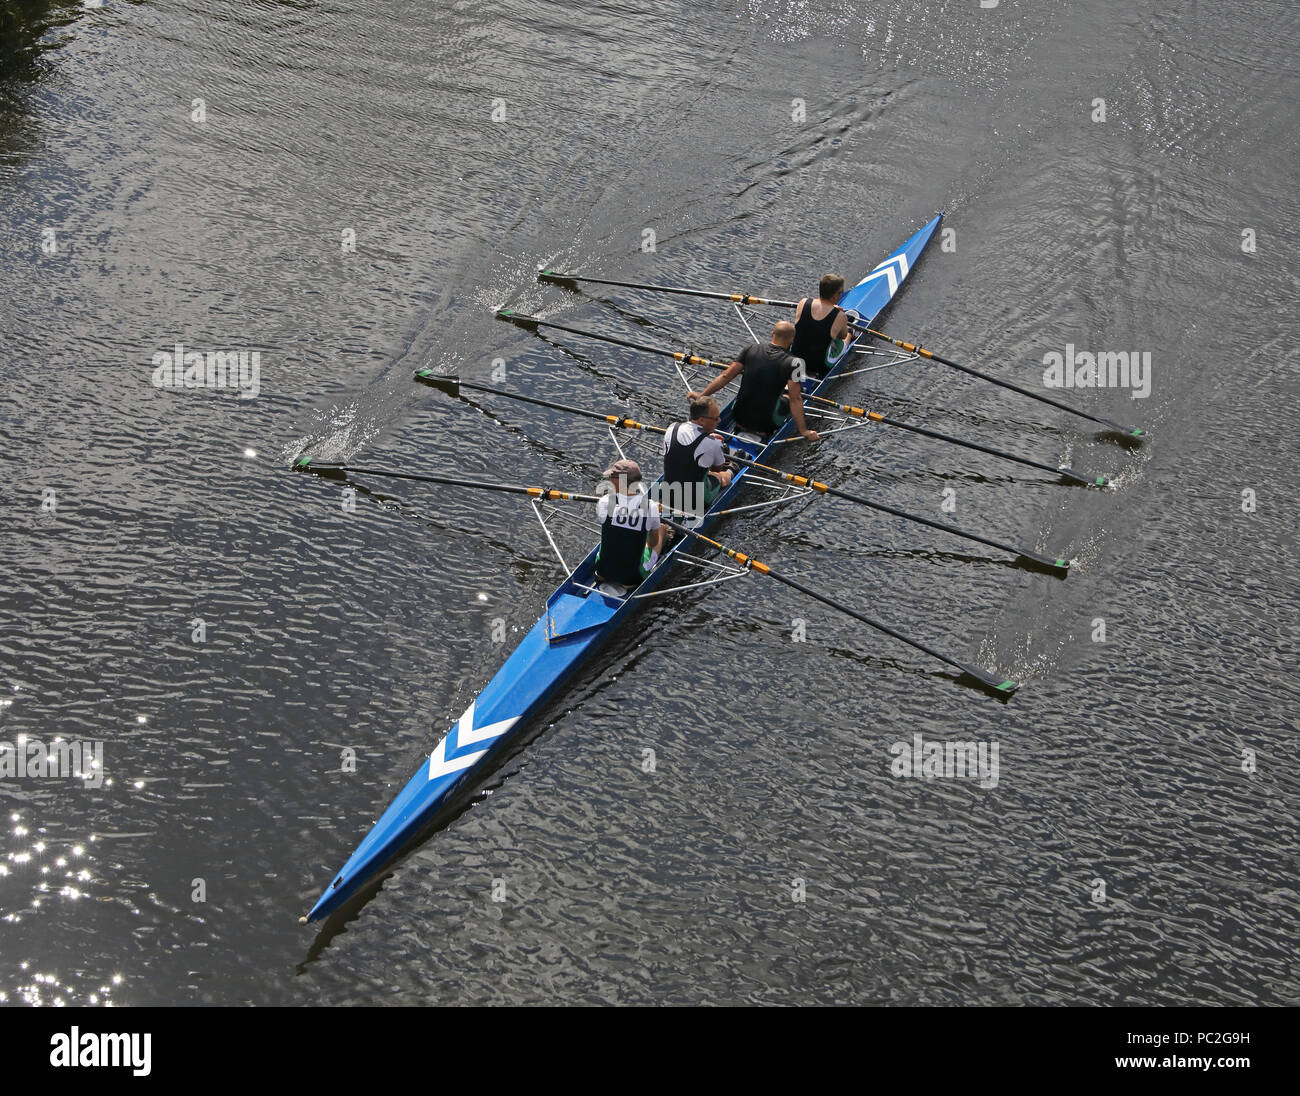 Trafford Rowing Club mens coxless quads, at Warrington Rowing Club 2018 Summer regatta, Howley lane, Mersey River, Cheshire, North West England, UK Stock Photo